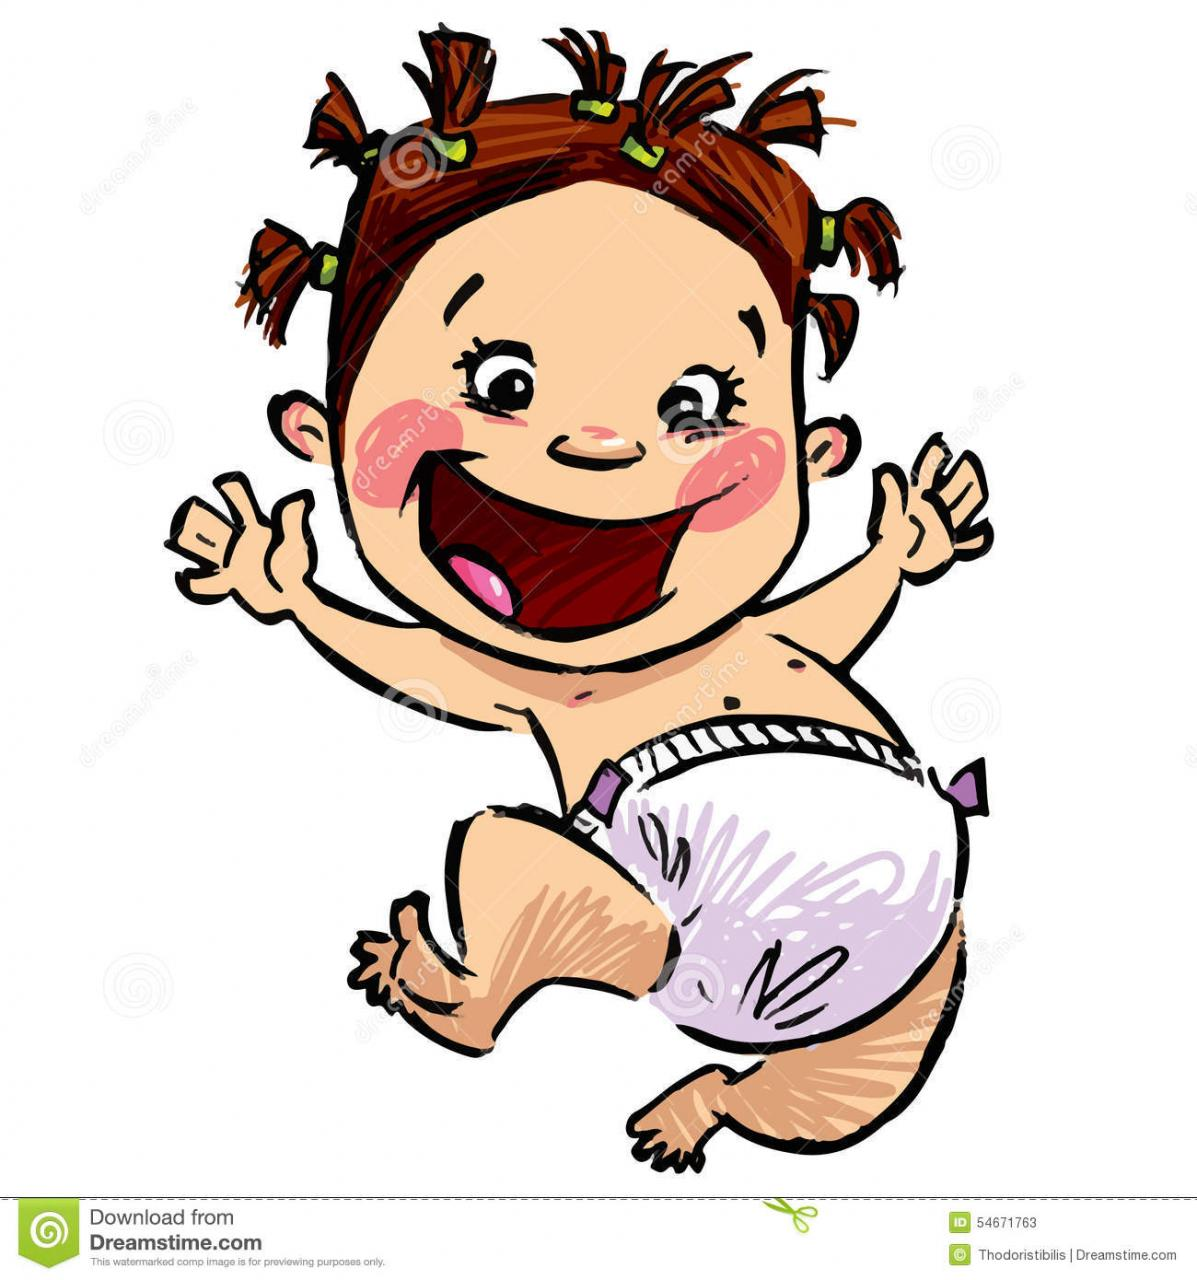 Cartoon Baby Girl With Diapers And Funny Hair Jumping High